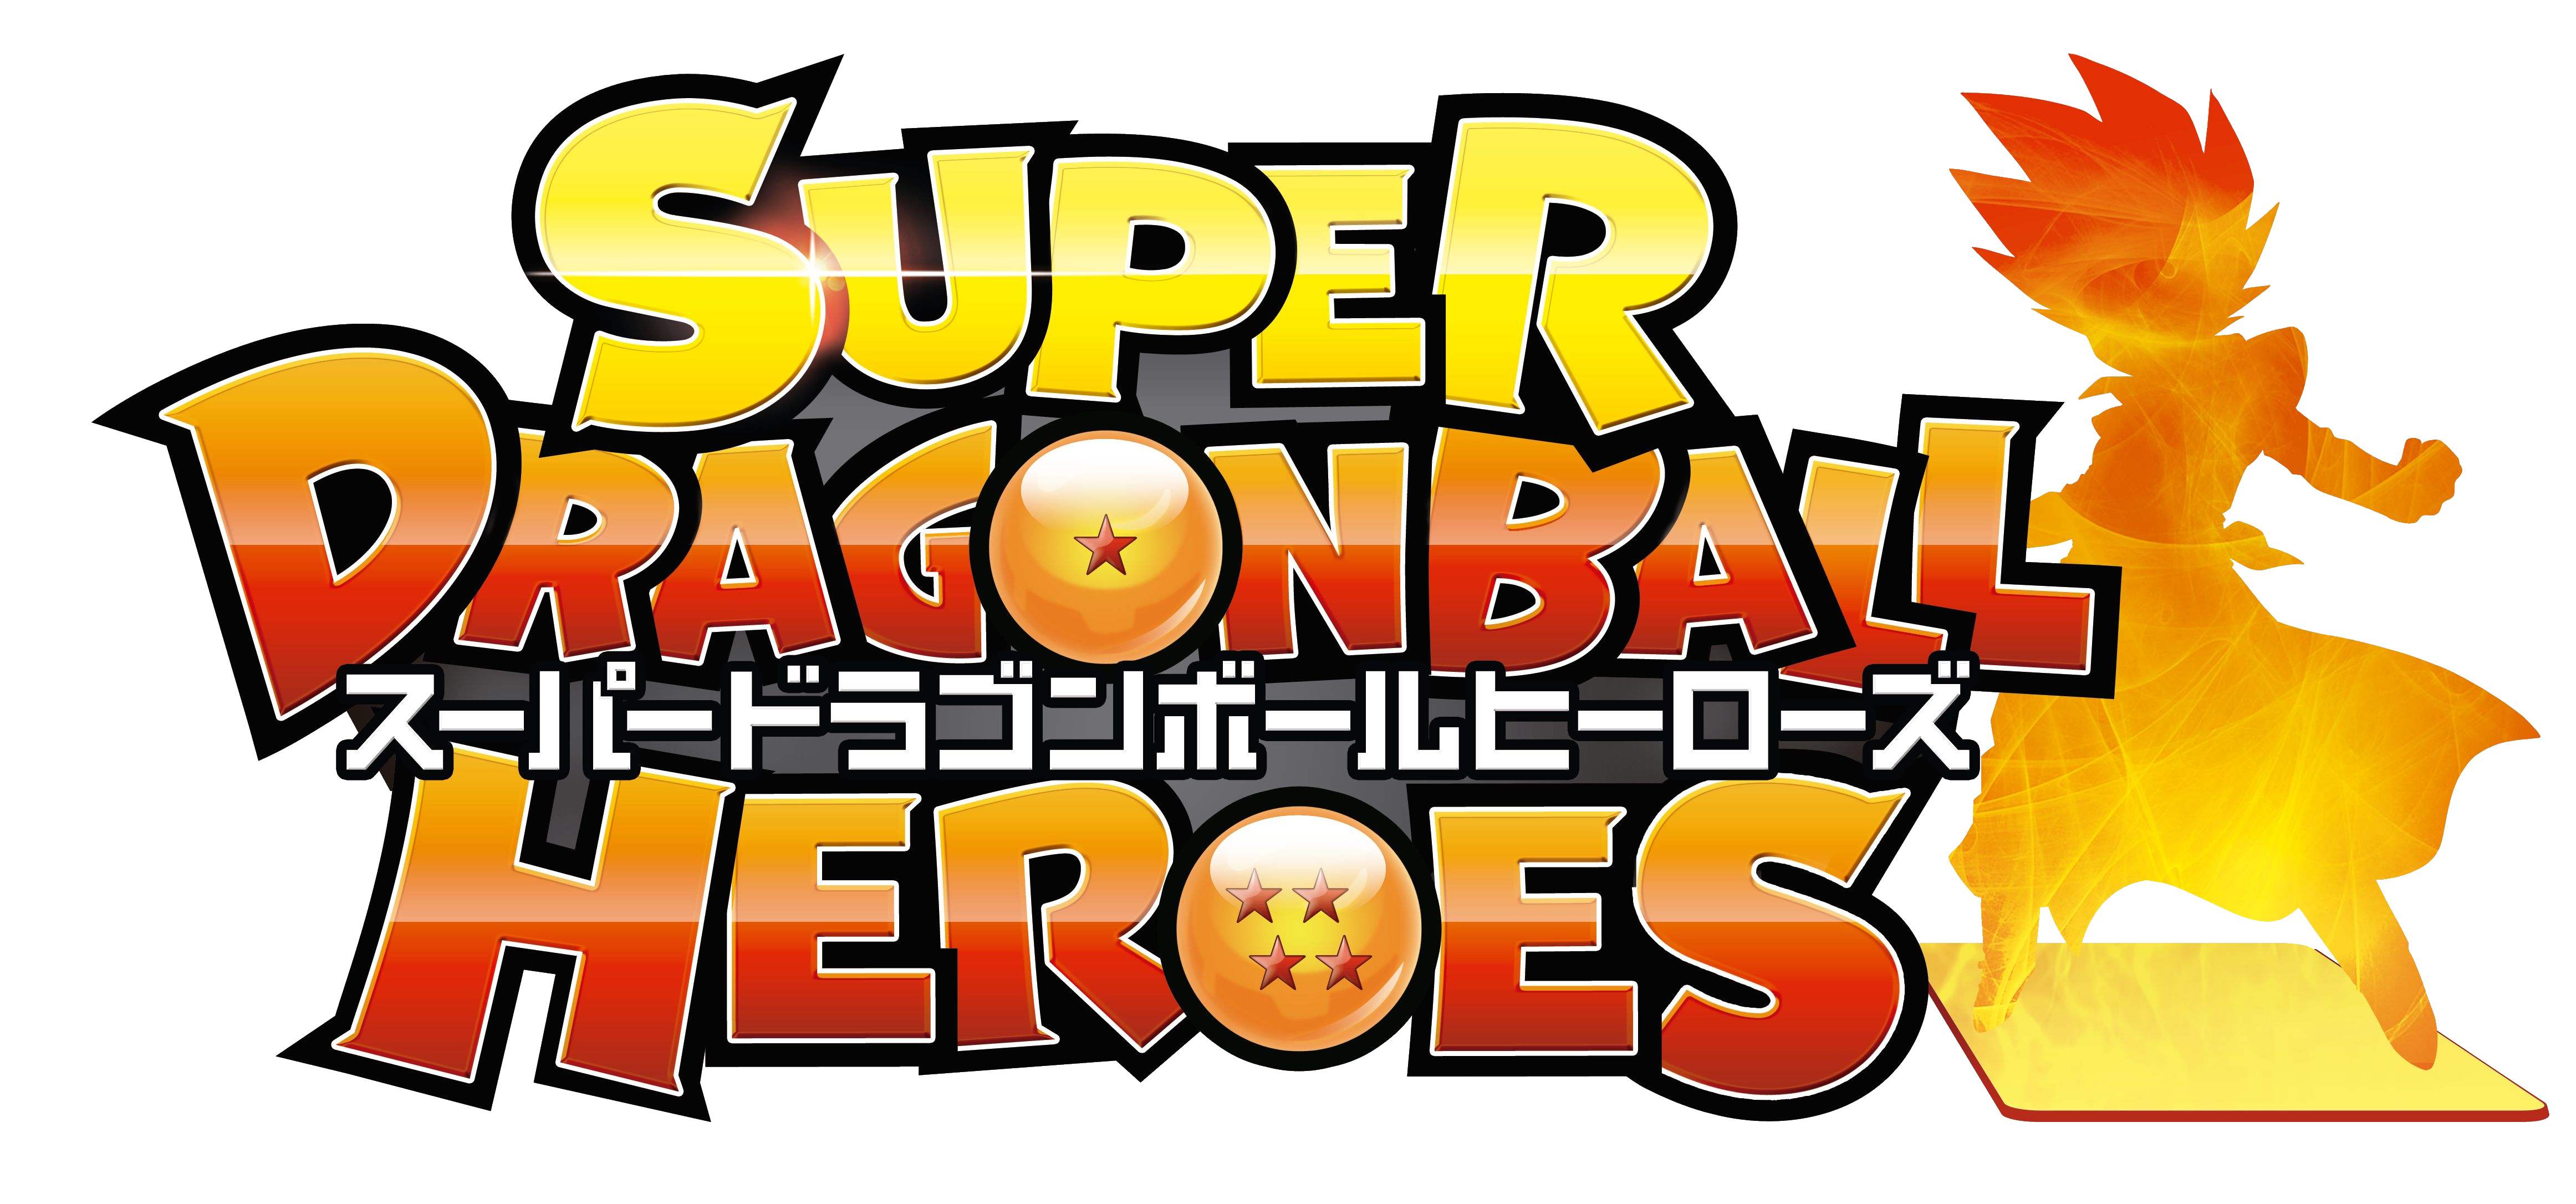 Super Dragon Ball Heroes Theme Song